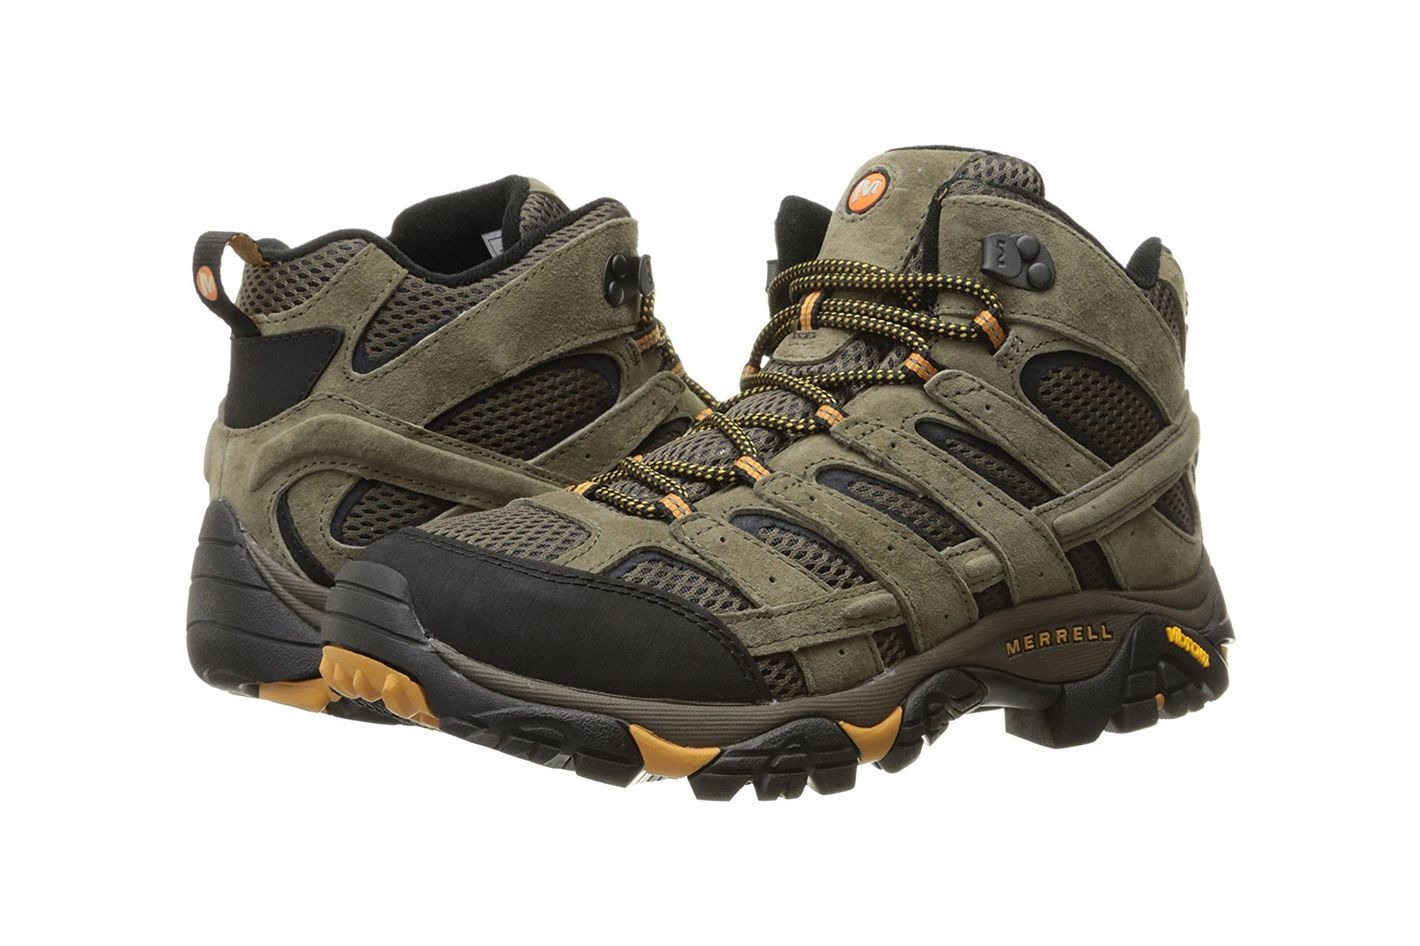 64386501 12 Best Hiking Boots for Men 2019